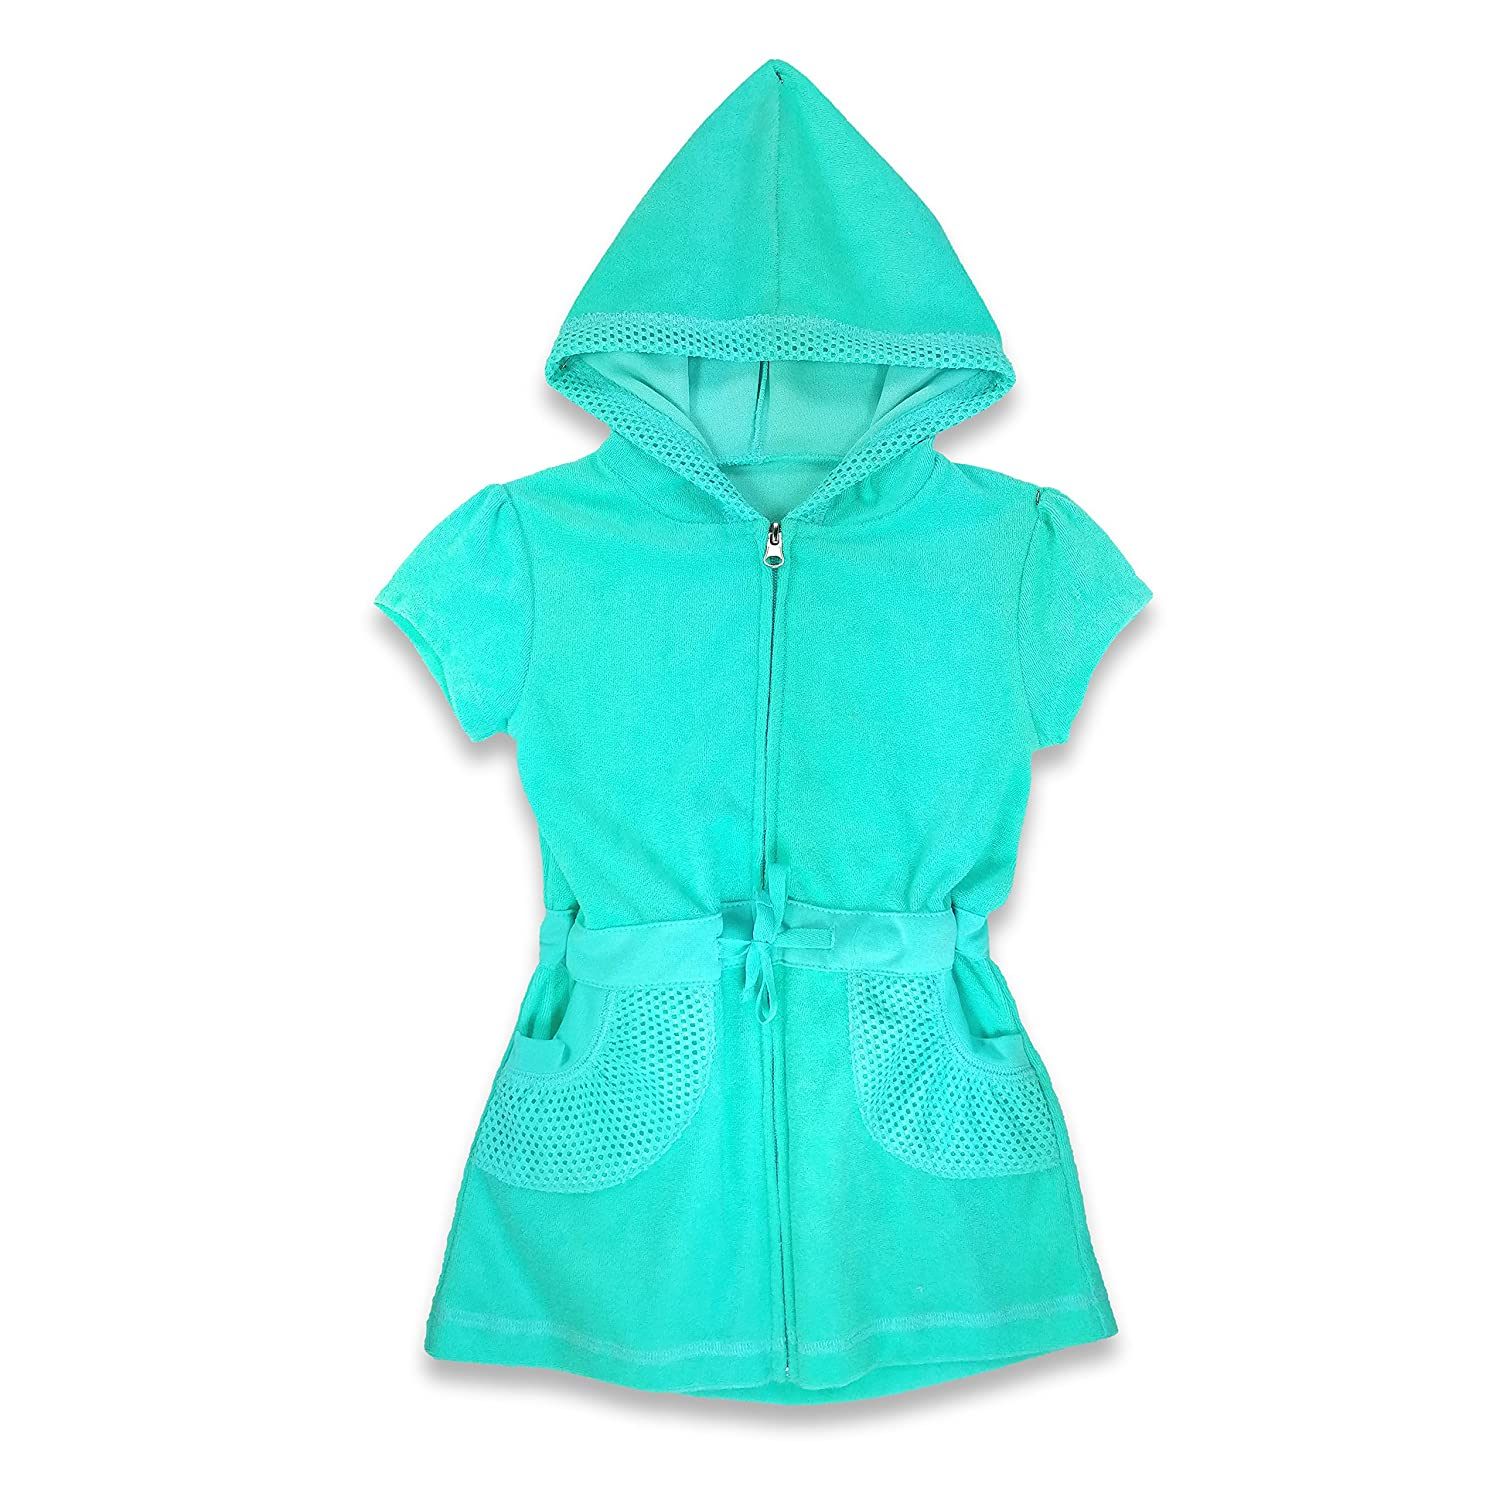 SOL Swim Little Girls Mesh Cover-Up Zip Front Turquoise, 2T, 3T, 4T GS2/376A-TRQ-2T